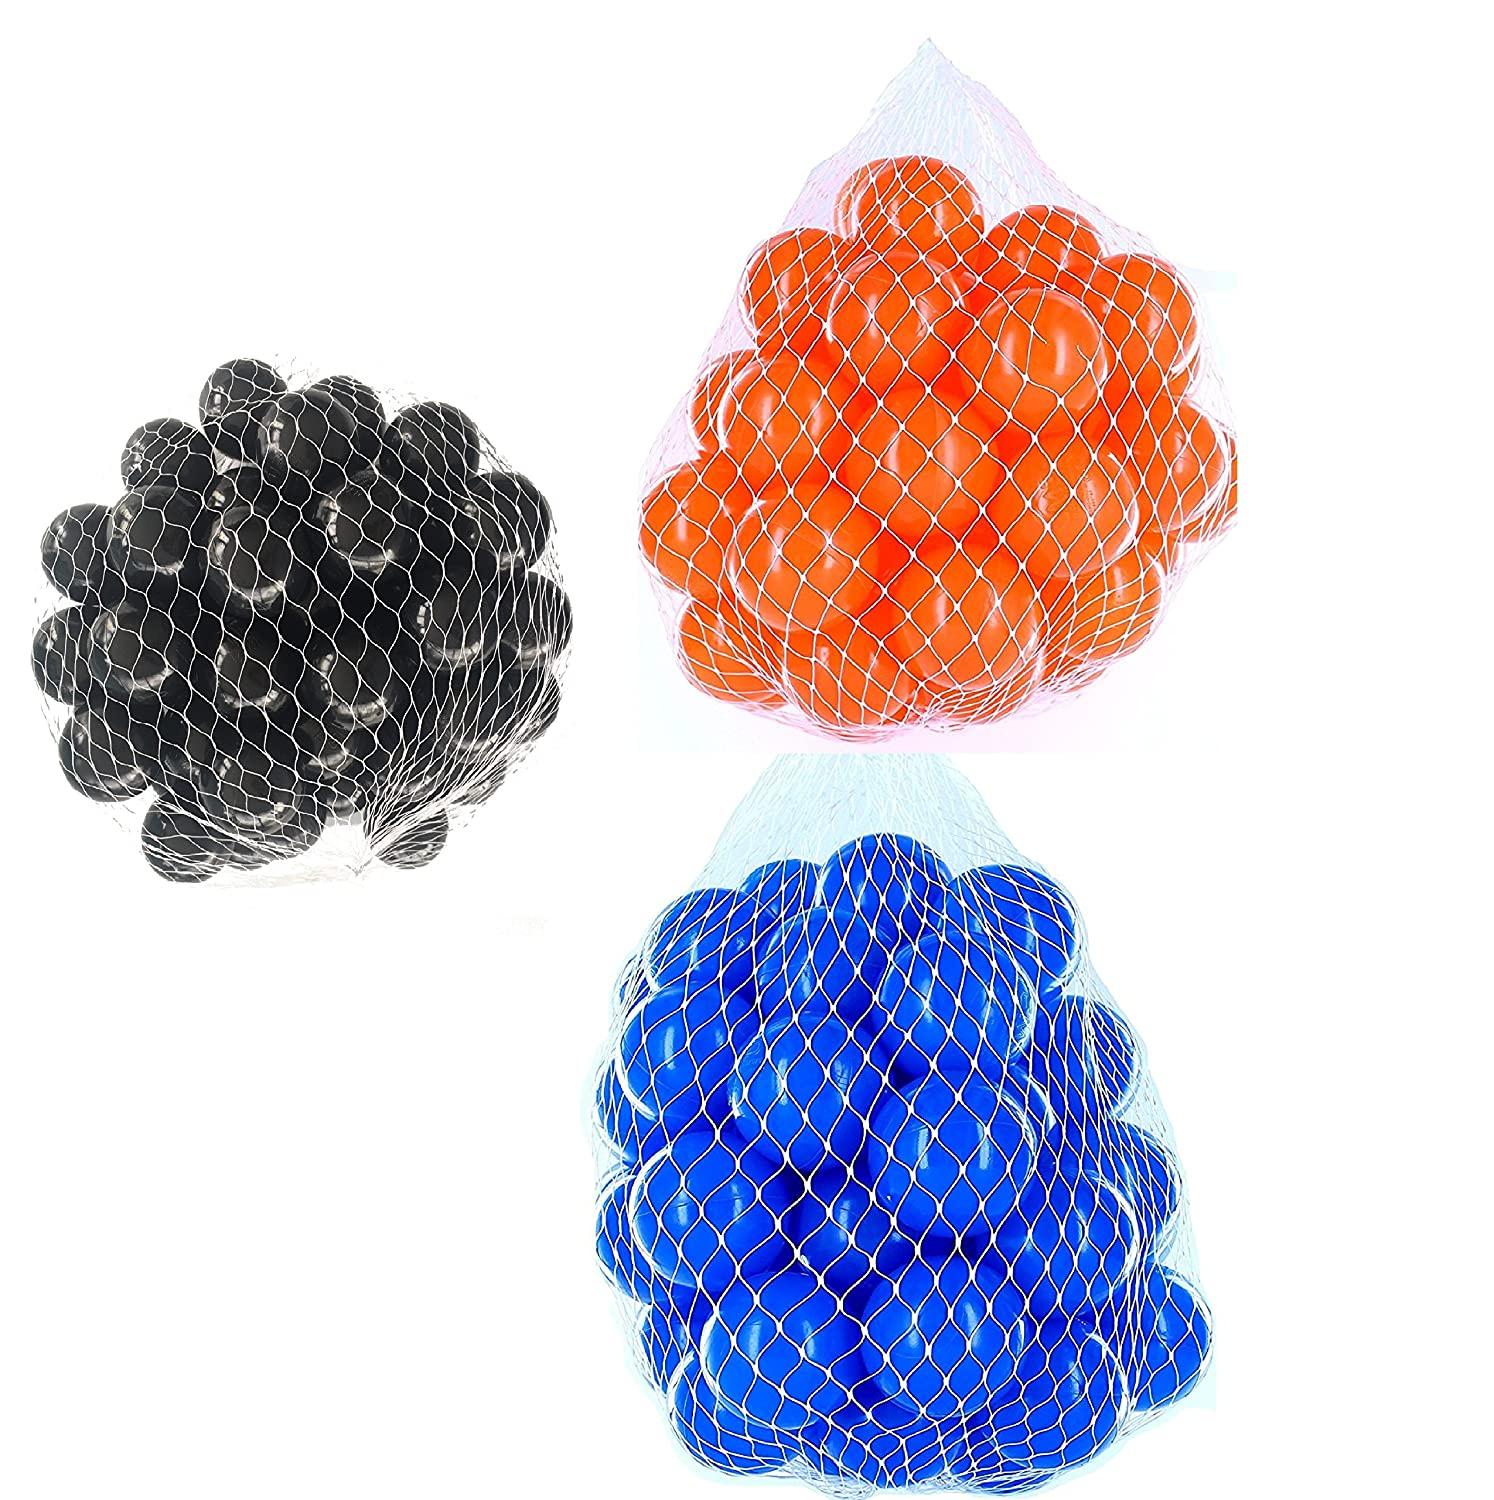 900 Stück Balls For Ball Pool Mix Set with bluee, orange & Black